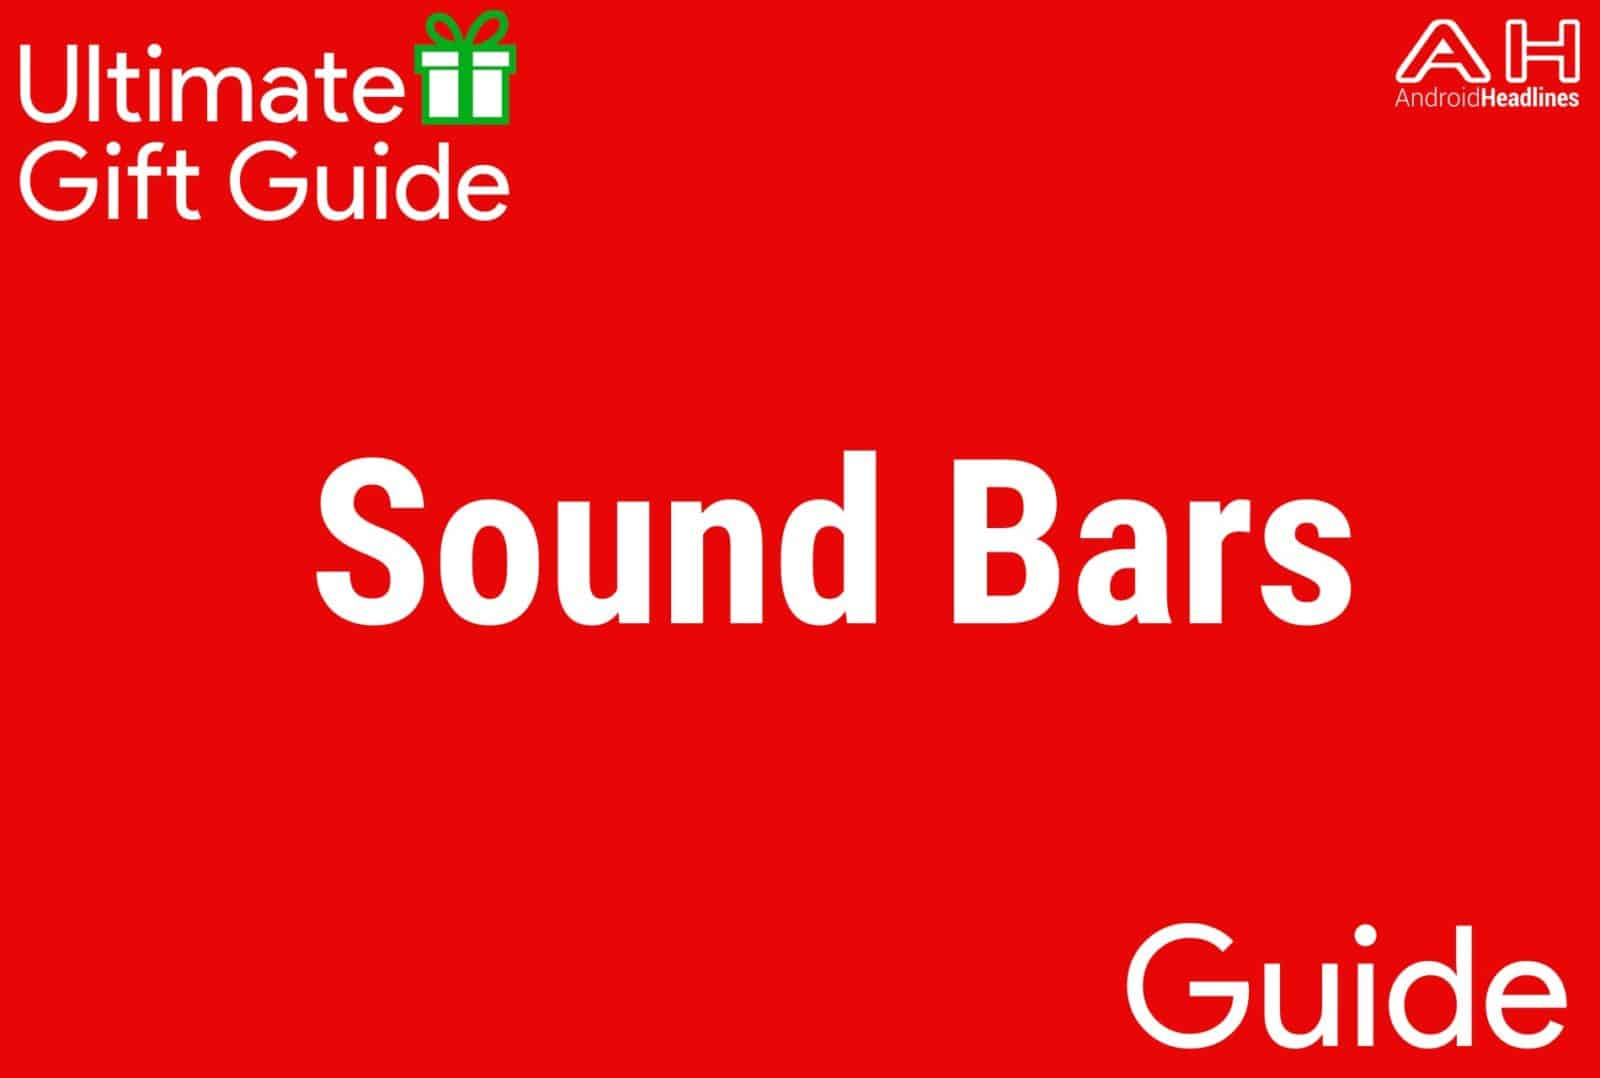 Sound Bars - Gift Guide 2015